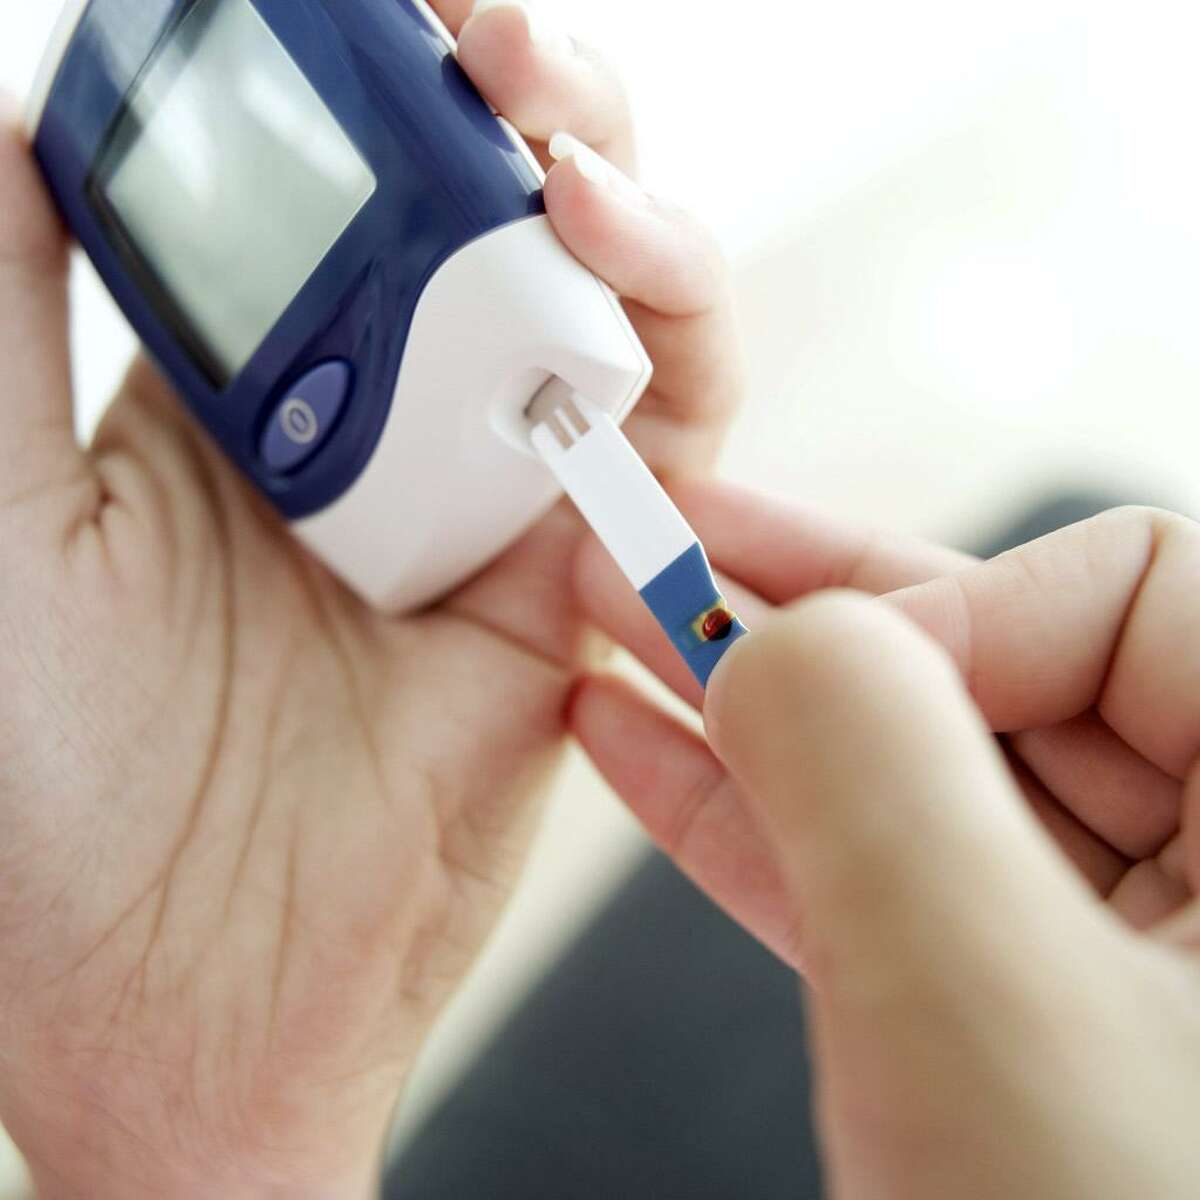 The number of adults developing Type 2 diabetes is decreasing, which may, in part, be attributed to early intervention and lifestyle changes to lower blood sugar, according to Laura Falt.